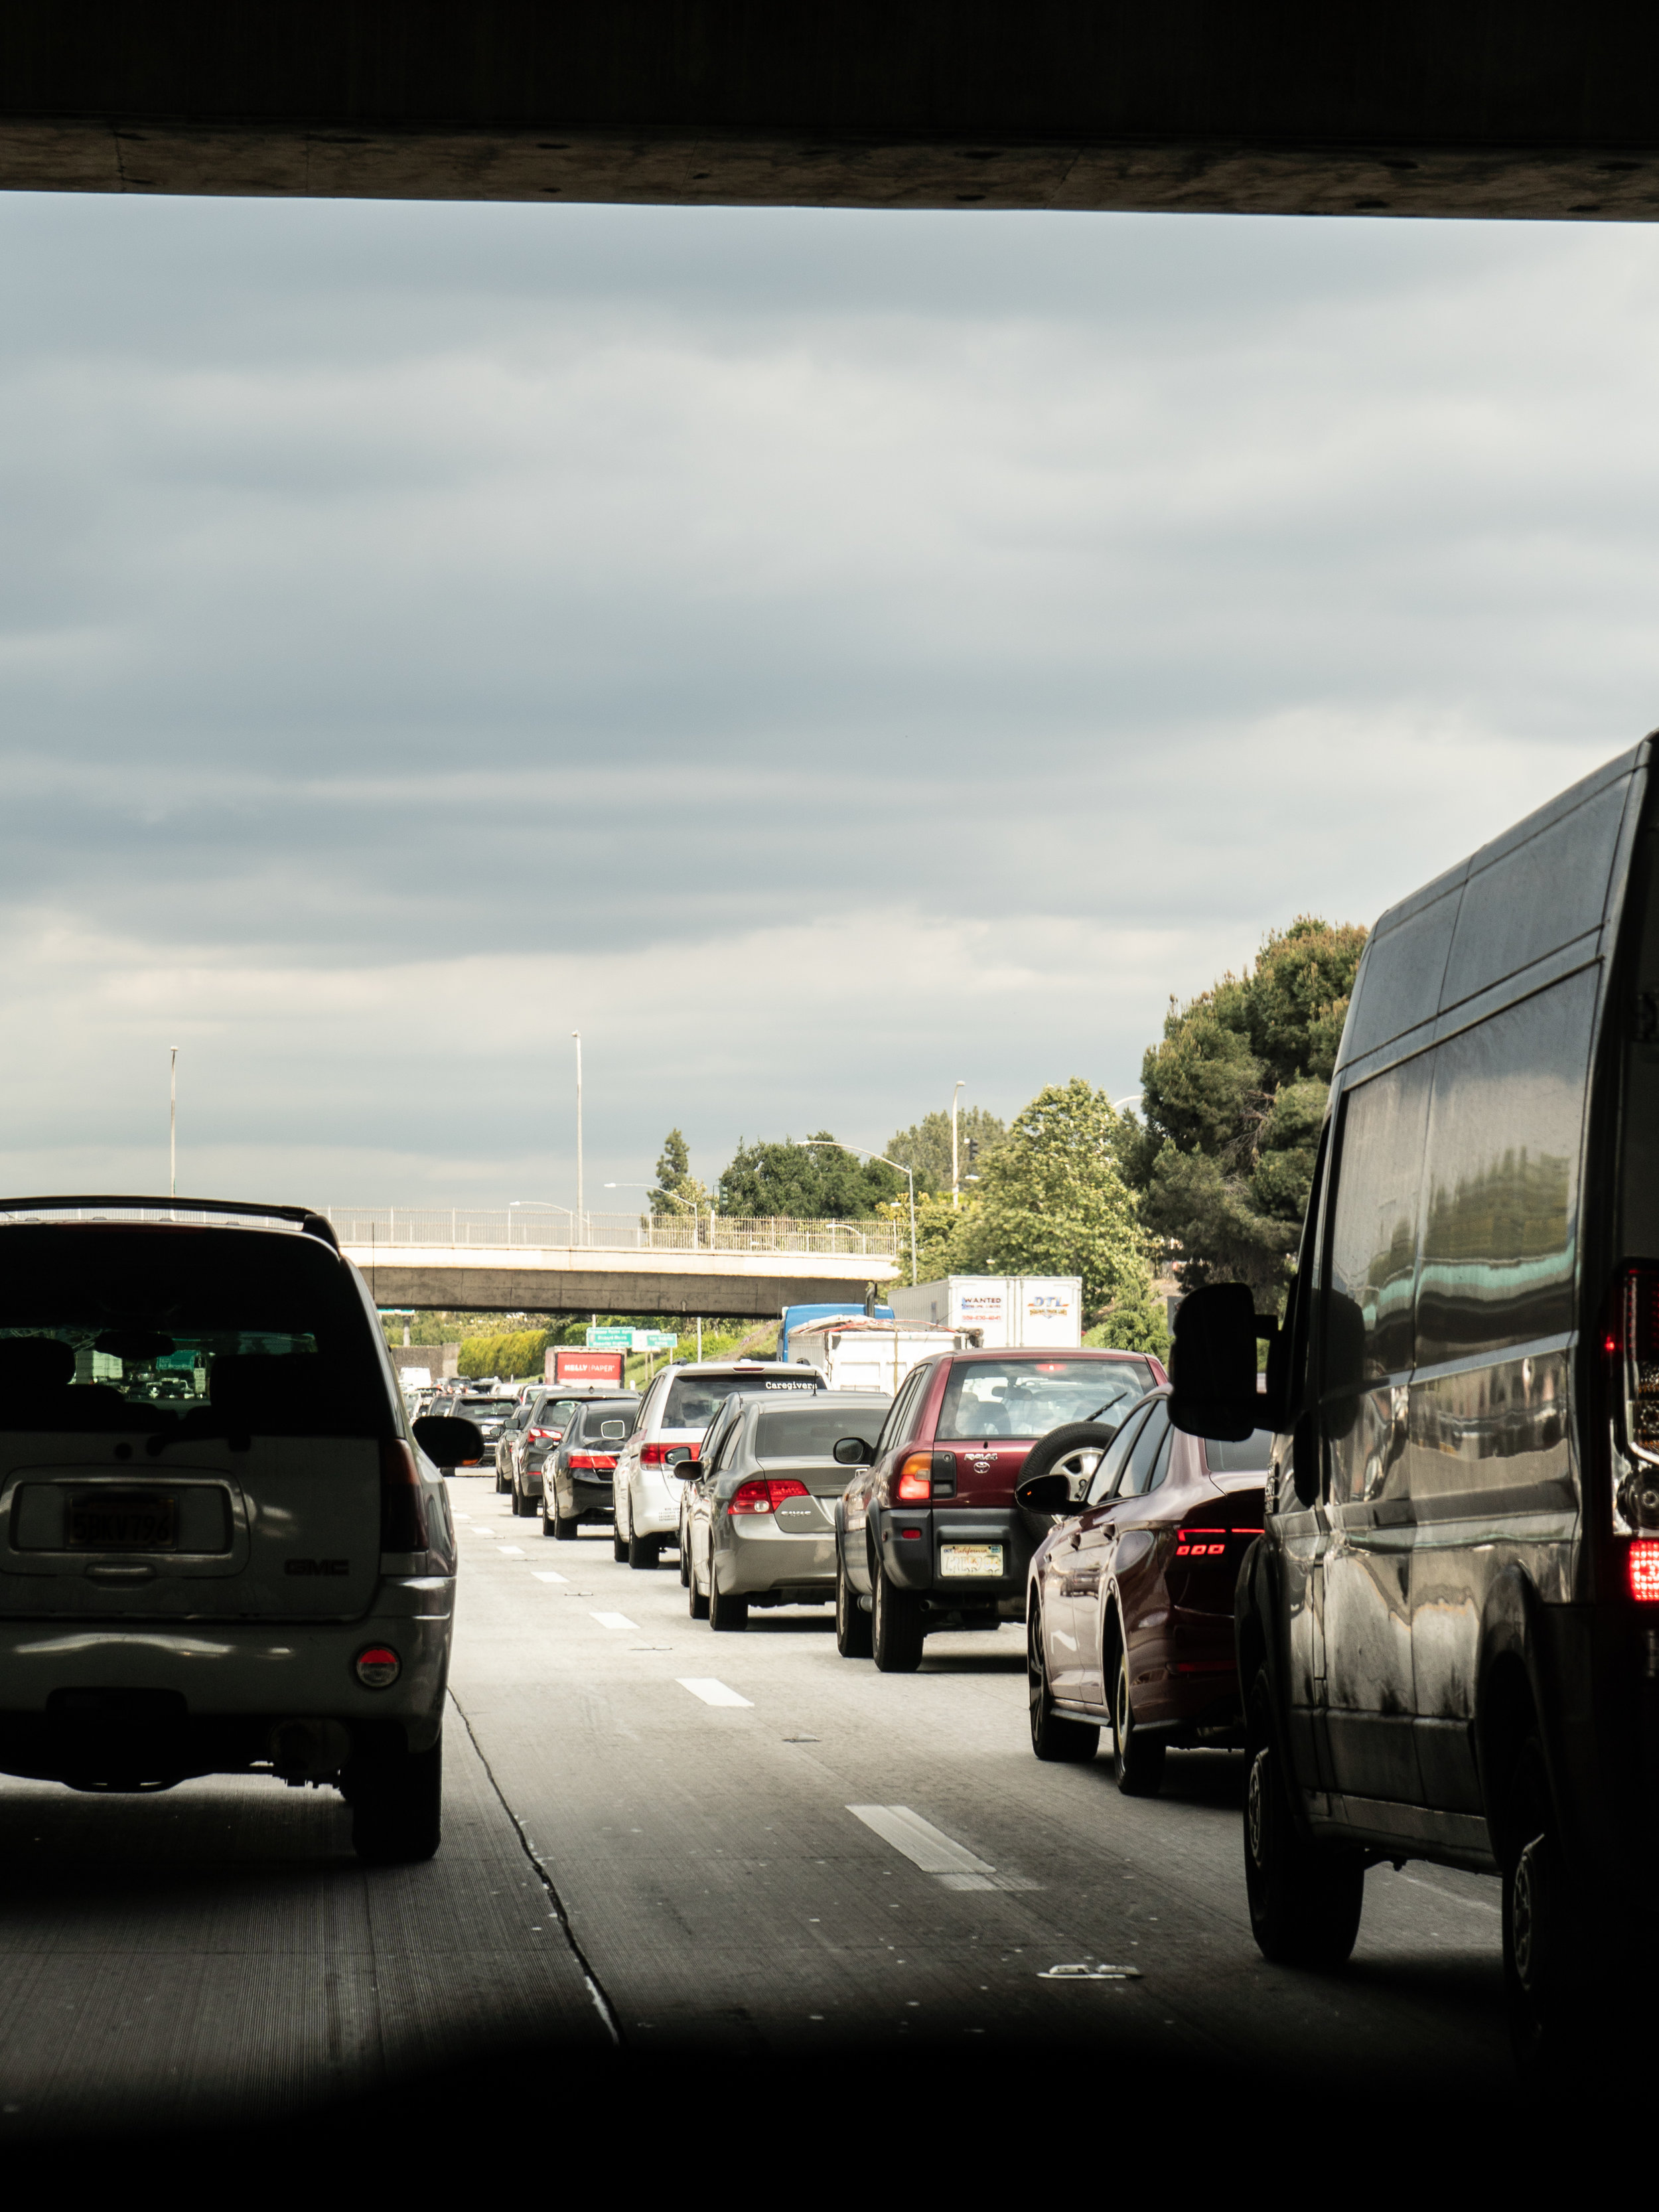 Traffic can be a nightmare, but your car and commuter habits could be a sanctuary.